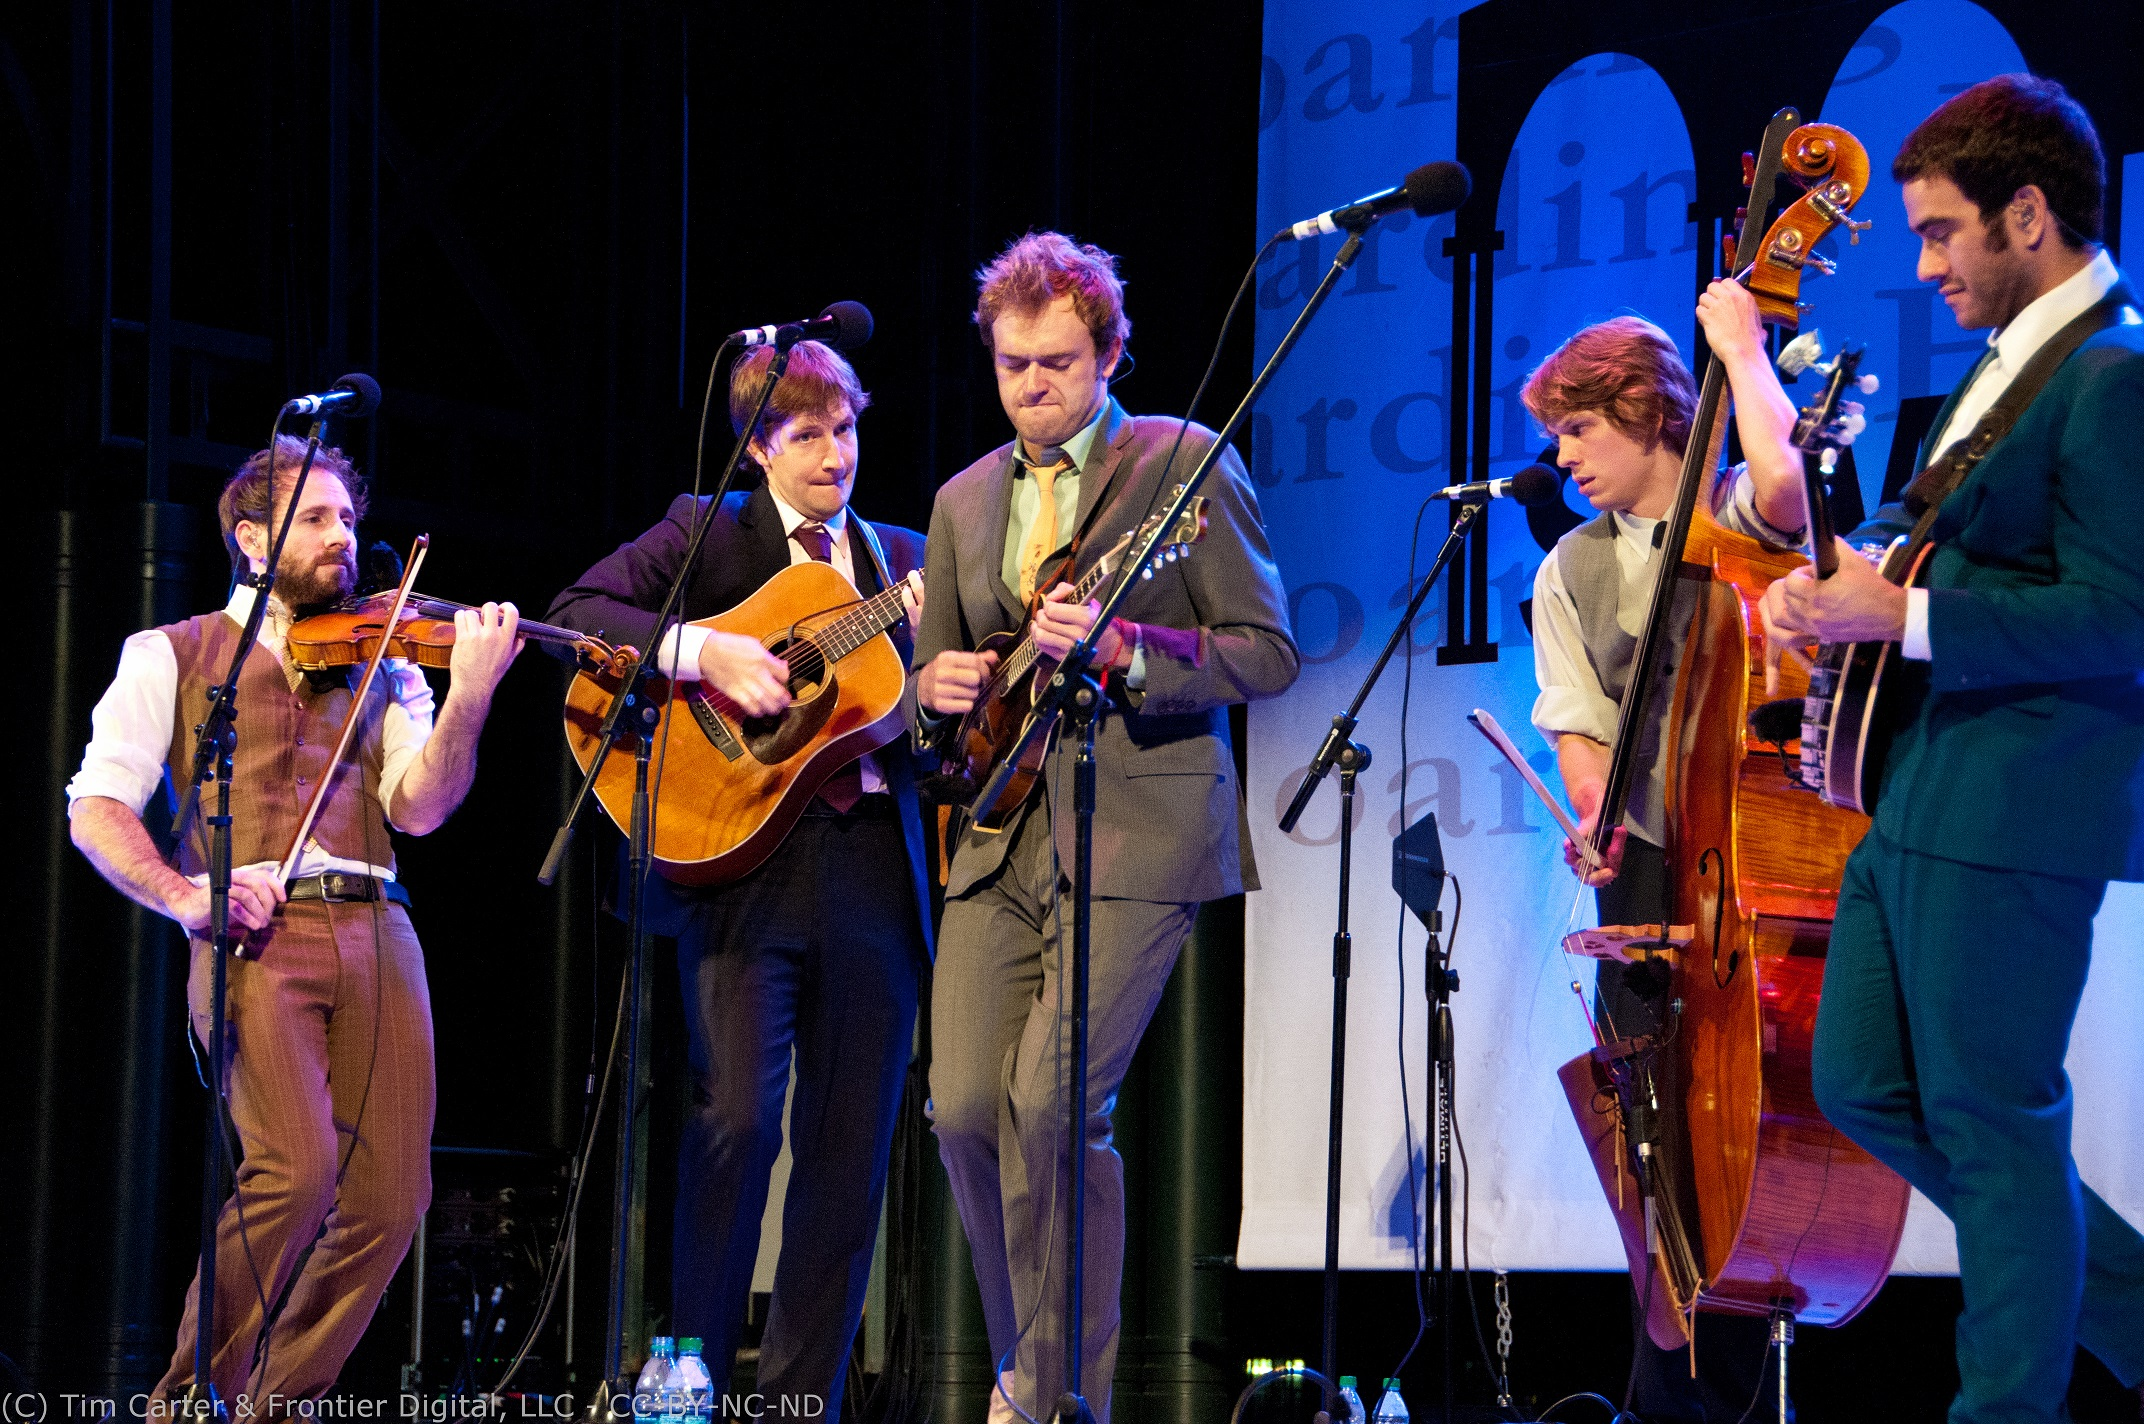 Punch Brothers live © Tim Carter 2011 / https://www.flickr.com/photos/streamingmeemee/6269715672/